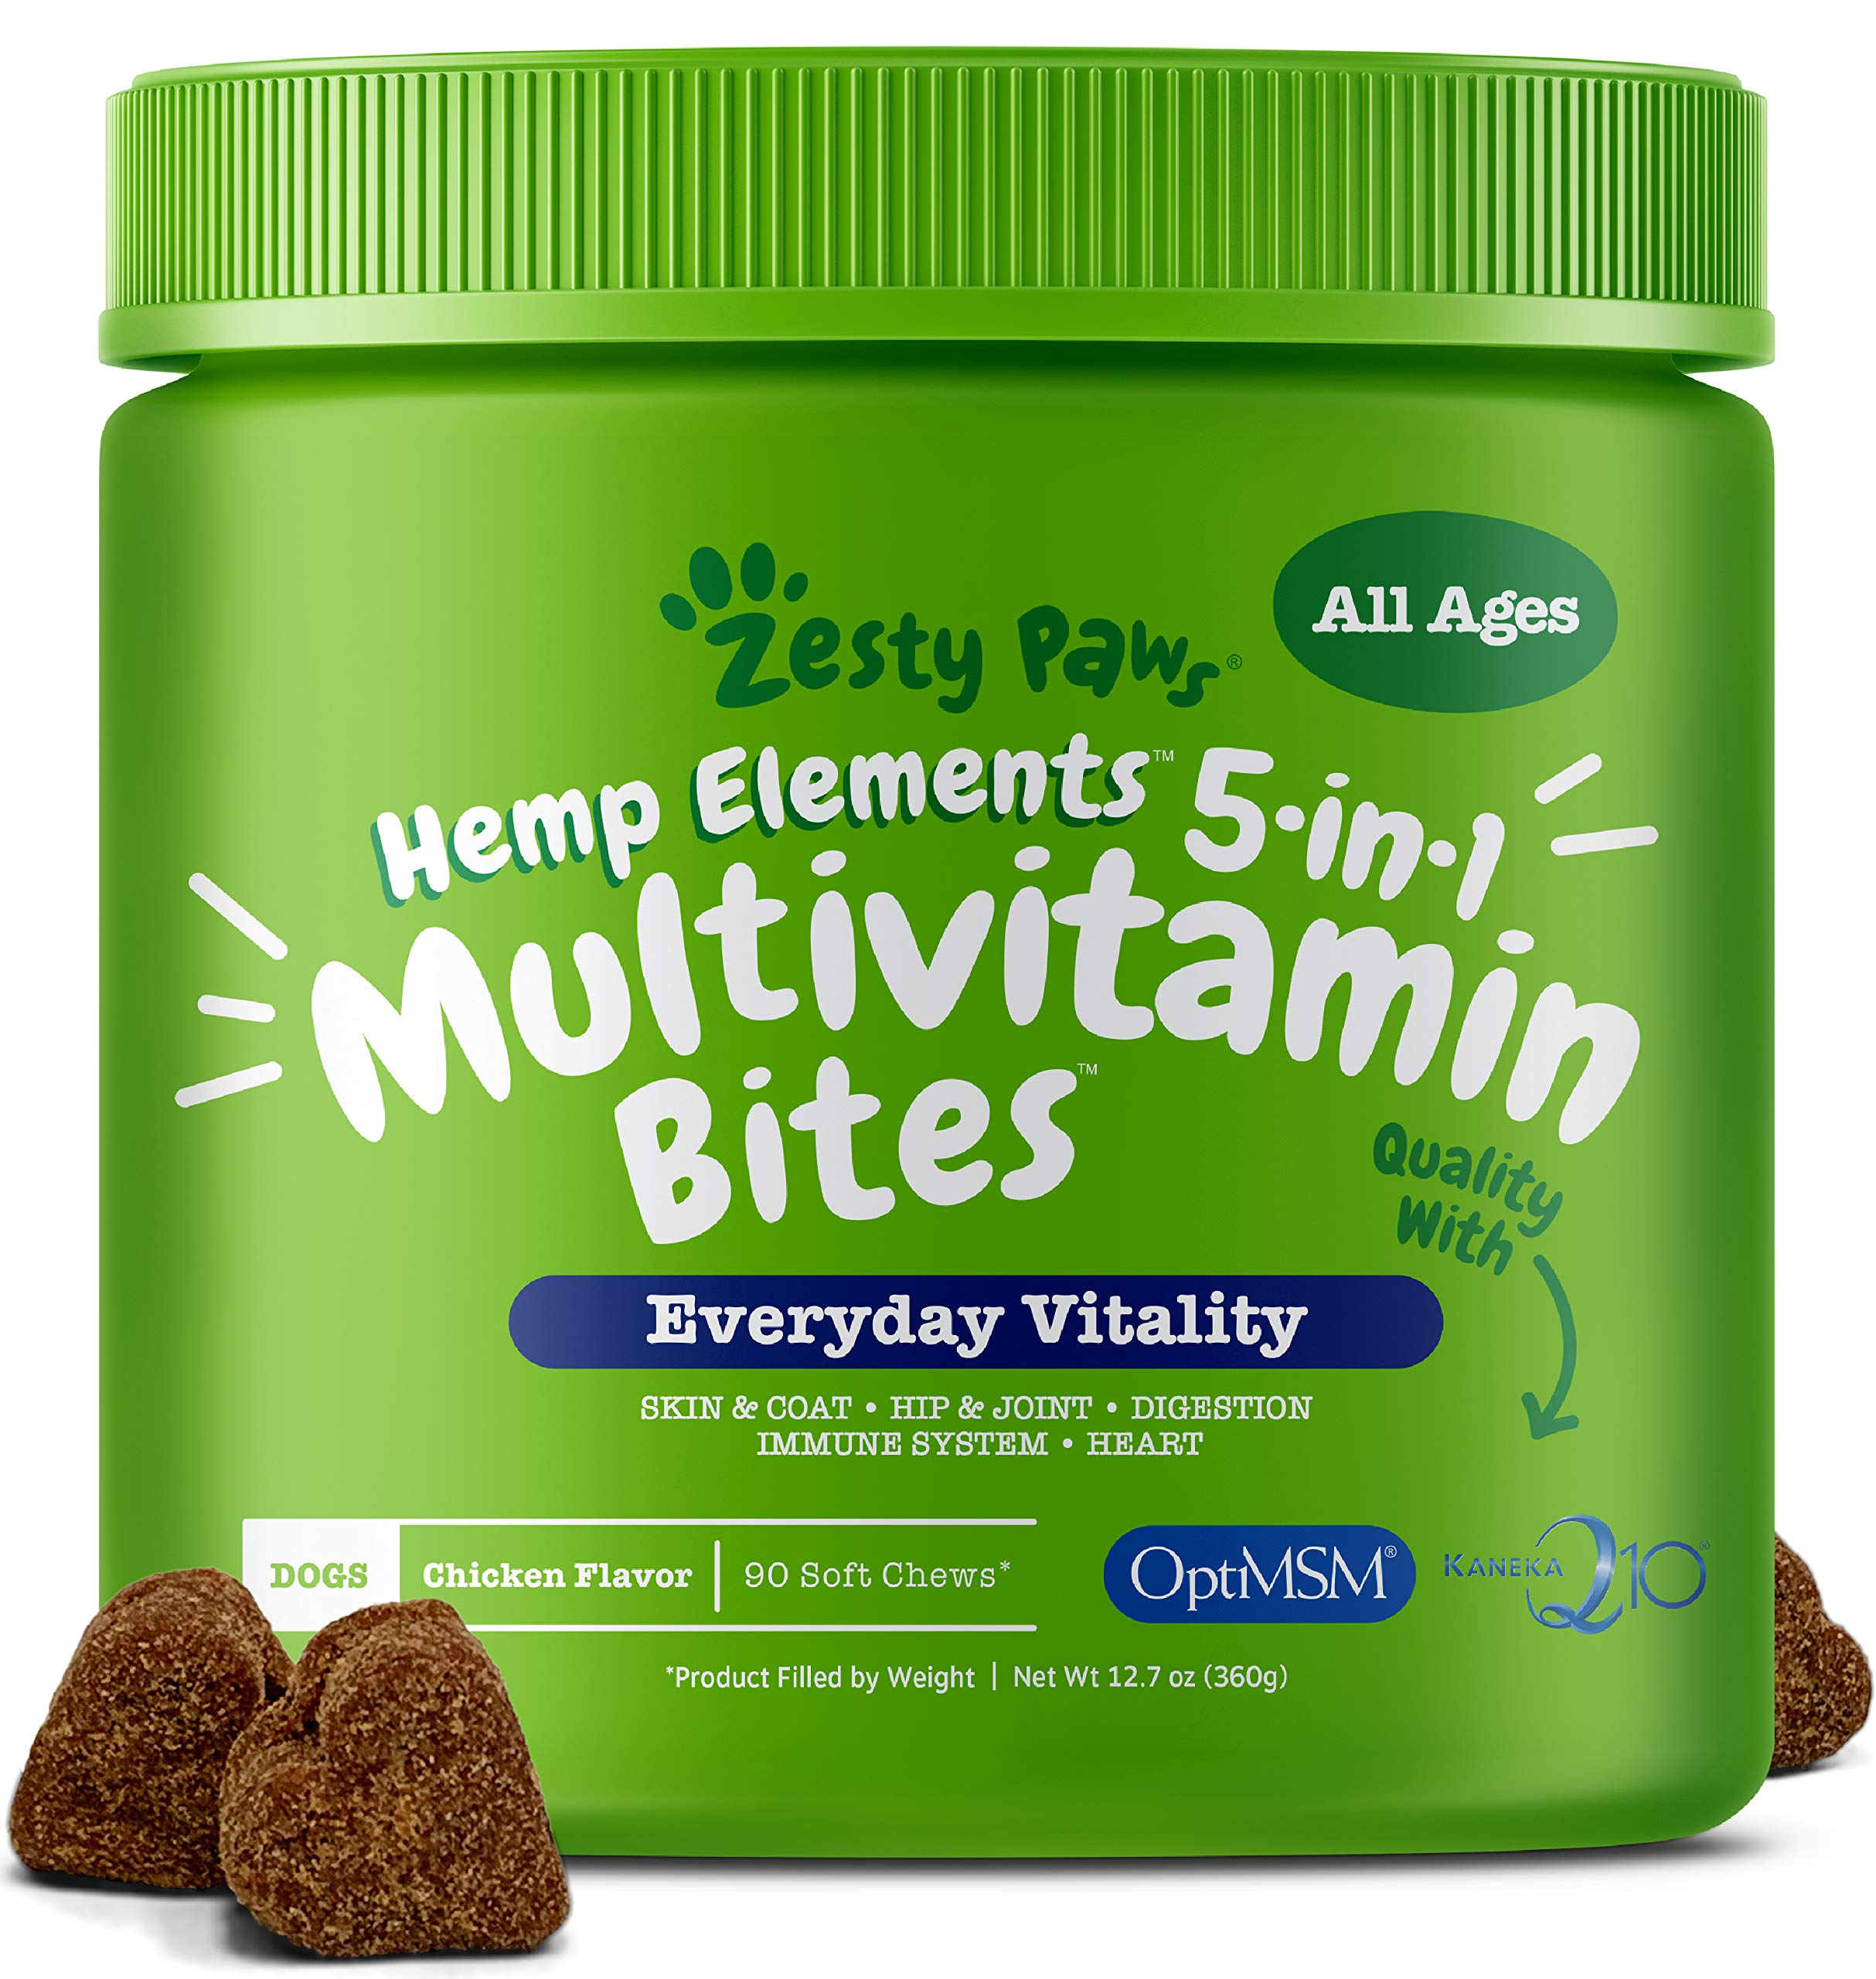 Multivitamin for Dogs with Hemp - Glucosamine Chondroitin + MSM for Hip & Joint Health - Digestive Enzymes & Probiotics for Digestion - Vitamins & Omega 3 for Skin & Coat + Heart & Immune - 90 Count by Zesty Paws